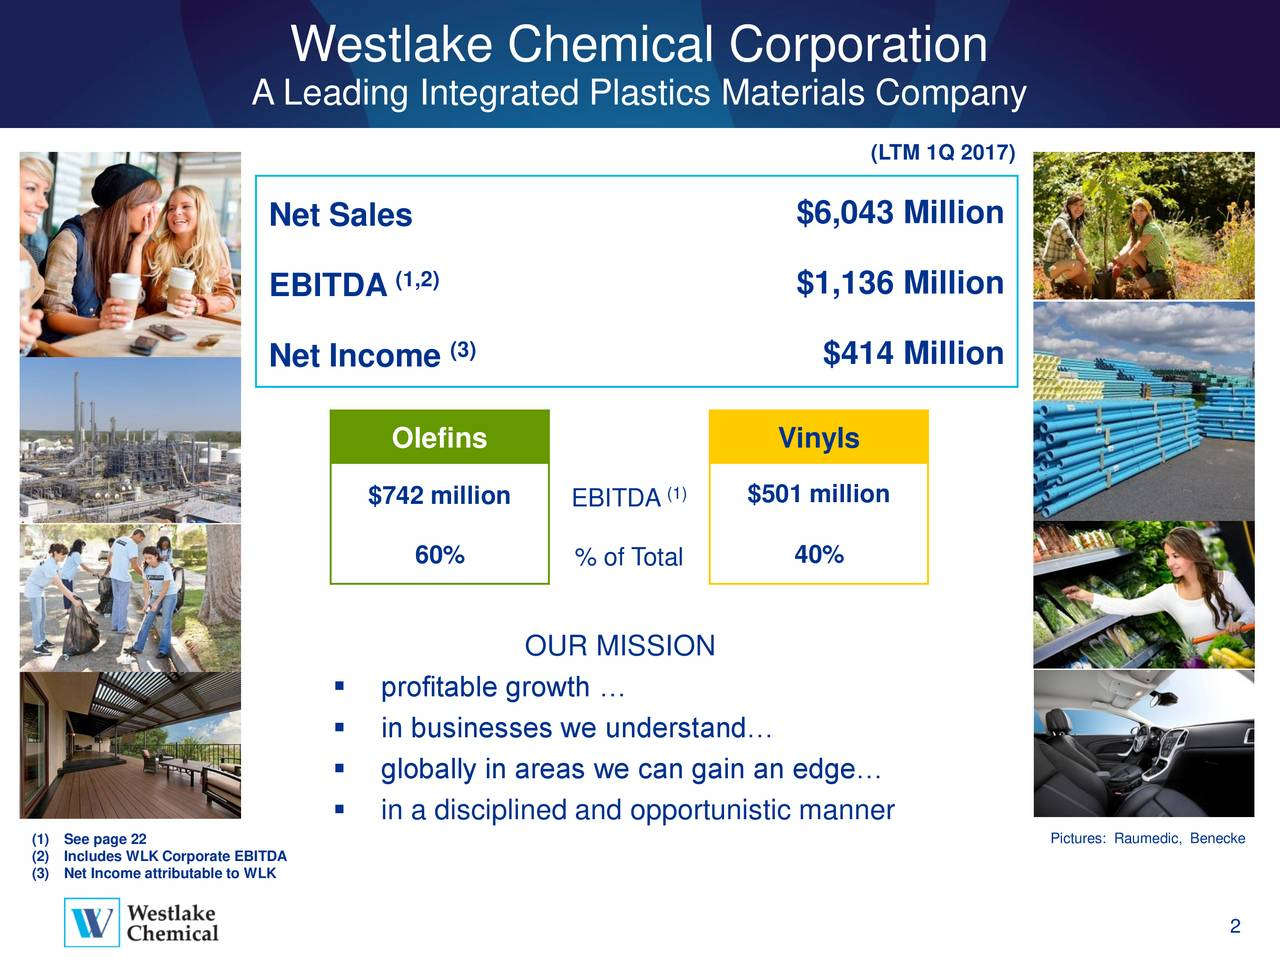 A Leading Integrated Plastics Materials Company (LTM 1Q 2017) Net Sales $6,043 Million (1,2) EBITDA $1,136 Million (3) $414 Million Net Income Olefins Vinyls $742 million EBITDA (1) $501 million 60% % of Total 40% OUR MISSION profitable growth in businesses we understand globally in areas we can gain an edge in a disciplined and opportunistic manner (1)See page 22 Pictures: Raumedic, Benecke (2)Includes WLK Corporate EBITDA (3)Net Income attributable to WLK 2